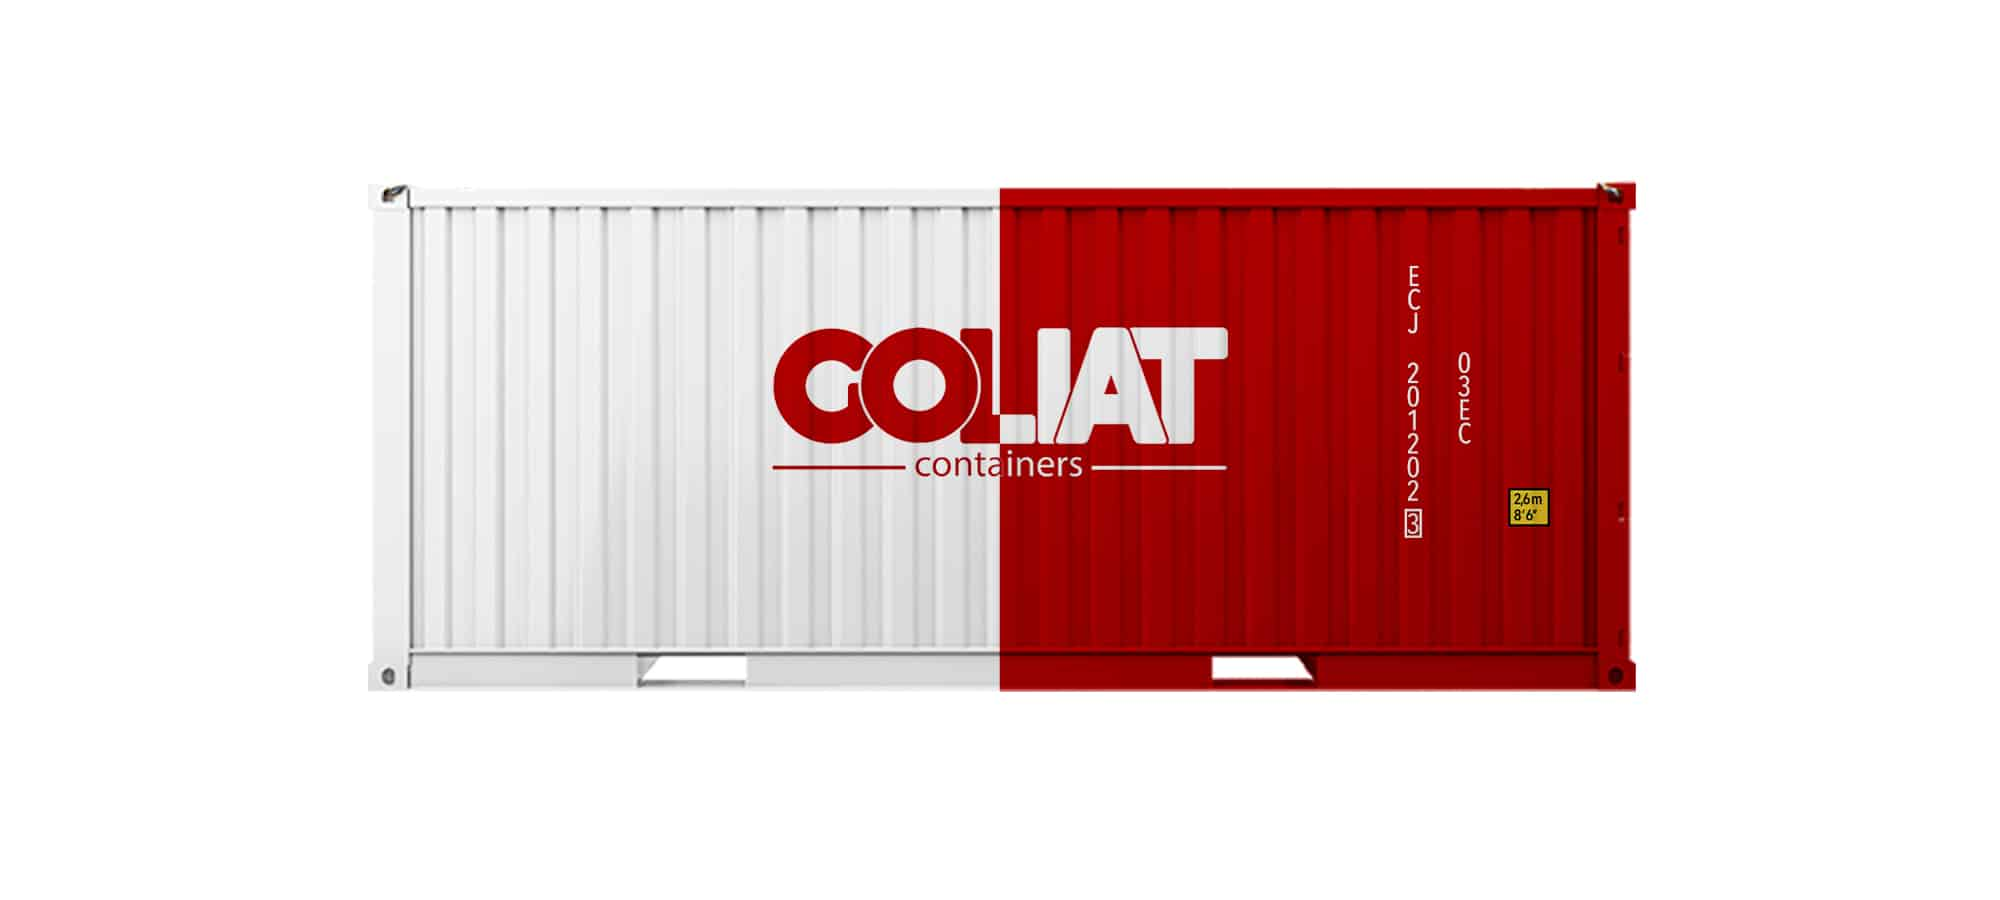 Containers Goliat